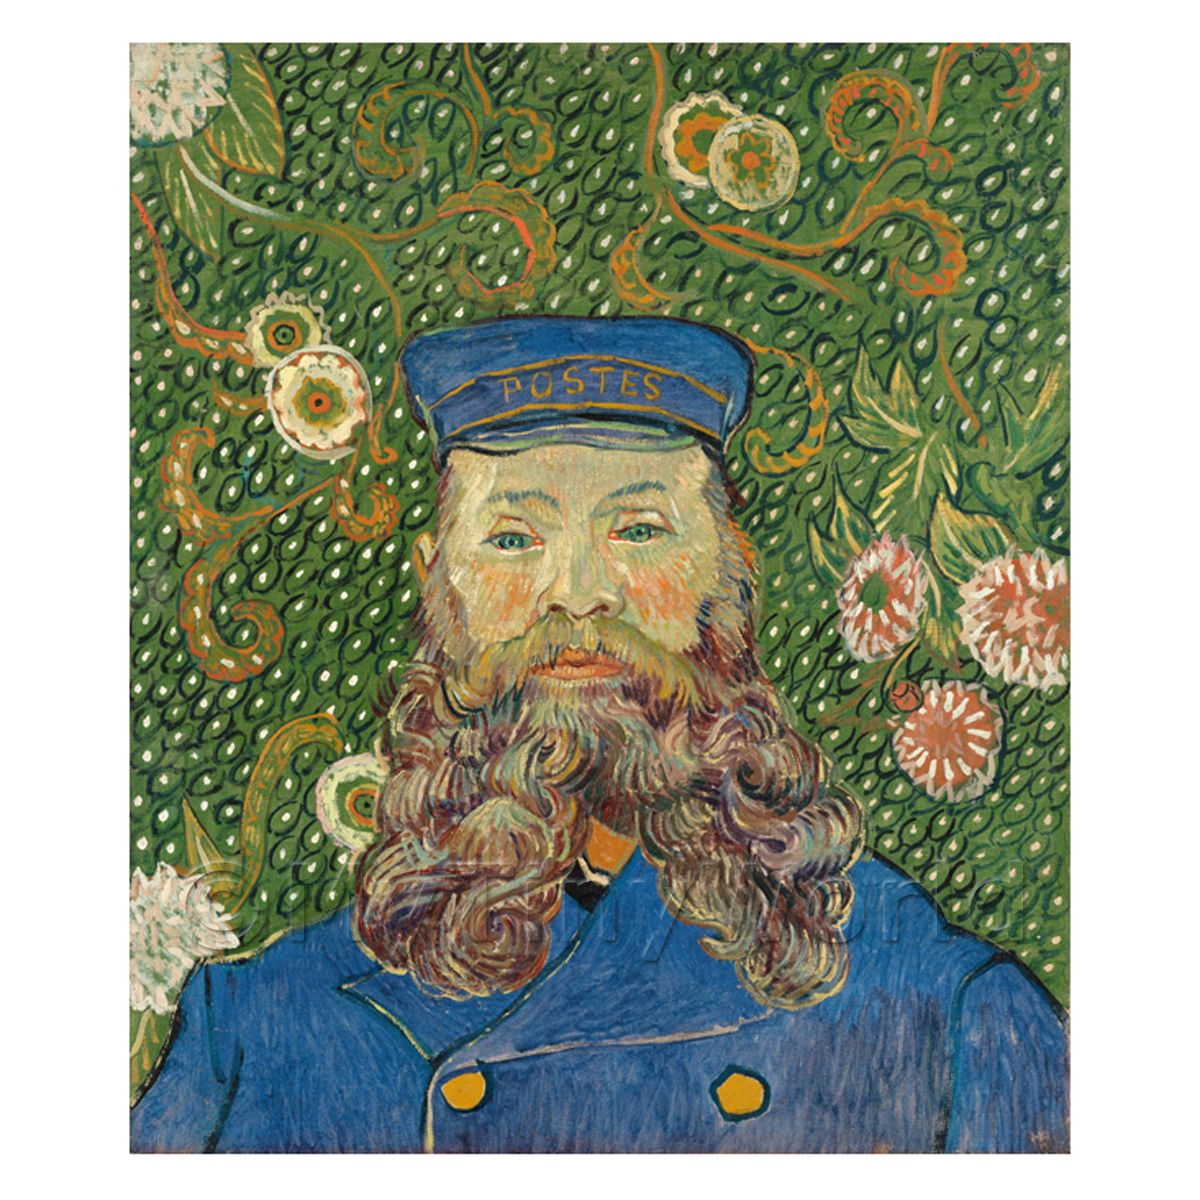 Van Gogh Painting Portrait of Joseph Roulin No.1